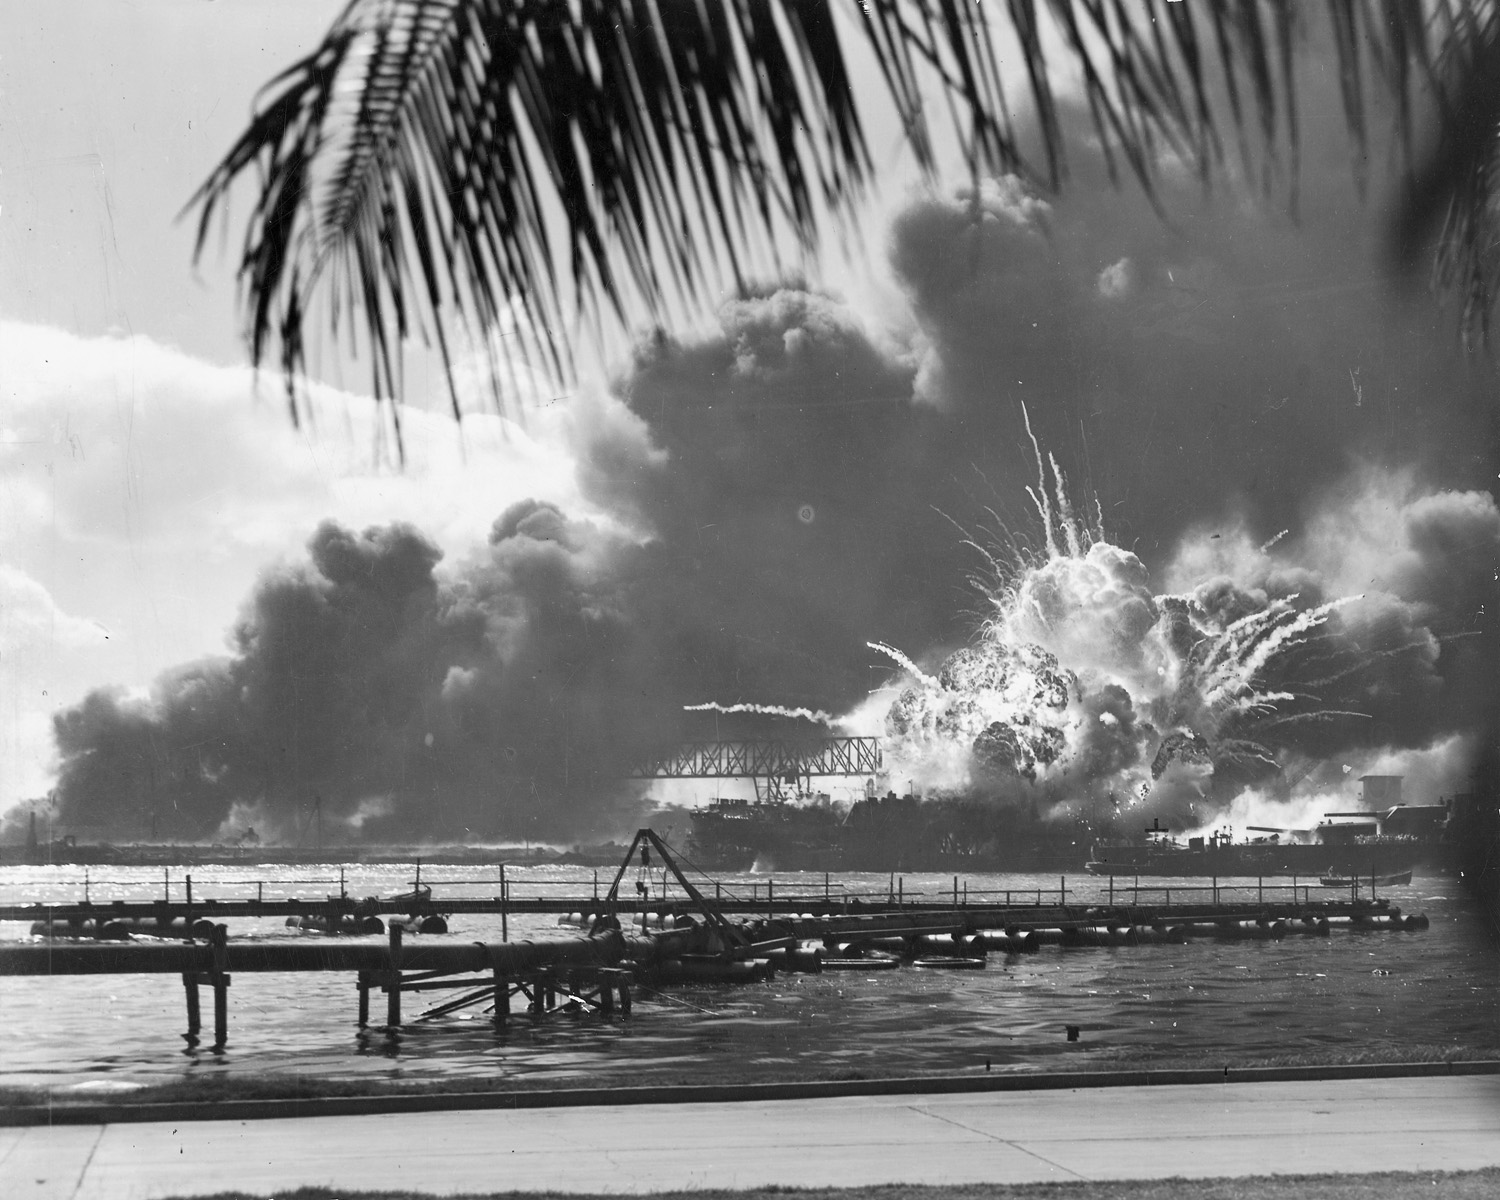 La USS Shaw esplode durante l'attacco a Pearl Harbor, il 7 dicembre 1941 cult stories cultstories cinema cult story cultstory art culture music ipse dixit aneddoti citazioni frasi famose aforismi immagini foto personaggi cultura musica storie facts fatti celebrità vip cult spettacoli live performance concerto photo photography celebrity giornalismo scrittura libri genio pop icon attore cantante solista pittrice scultore attrice star diva sex symbol pearl harbor movie pearl harbor memorial pearl harbor tickets pearl harbor day pearl harbor facts pearl harbor hawaii pearl harbor island hawaii pearl harbor map pearl harbor imdb pearl harbor casualties pearl harbor attack pearl harbor address pearl harbor attack scene pearl harbor admission pearl harbor address to the nation pearl harbor arizona pearl harbor attack facts pearl harbor aftermath pearl harbor attack timeline pearl harbor articles a pearl harbor fact sheet a pearl harbor timeline a pearl harbor drink a pearl harbor movie a new pearl harbor kamikaze a pearl harbor attack a pearl harbor tour a pearl harbor a cyber pearl harbor a base pearl harbor pearl harbor bombing pearl harbor bowling pearl harbor before the attack pearl harbor battleships pearl harbor books pearl harbor ben affleck pearl harbor base map pearl harbor base housing pearl harbor bike path pearl harbor bah b-17 pearl harbor attack b-25 pearl harbor b 52 pearl harbor b-24 at pearl harbor harold b estes pearl harbor hawaii john b earle pearl harbor harold b estes pearl harbor jackson b davis pearl harbor lyndon b johnson pearl harbor b o pearl harbor pearl harbor conspiracy pearl harbor cast pearl harbor commissary pearl harbor closed pearl harbor christian academy pearl harbor cocktail pearl harbor causes pearl harbor cost pearl harbor church of christ triple c's pearl harbor francis c flaherty pearl harbor c est quoi pearl harbor pearl harbor c est où pearl harbor c. film pearl harbor date pearl harbor drink pearl harbor deaths pearl harbor death toll pearl harbor documentary pearl harbor day 2015 pearl harbor dress code pearl harbor dbq pearl harbor danny d day pearl harbor d day pearl harbor facts d miller pearl harbor d day pearl harbor attack d day vs pearl harbor franklin d roosevelt pearl harbor speech franklin d roosevelt pearl harbor quotes franklin d roosevelt pearl harbor speech text franklin d roosevelt pearl harbor speech video pearl harbor d day invasion pearl harbor elementary pearl harbor essay pearl harbor events pearl harbor effects pearl harbor exchange pearl harbor entrance fee pearl harbor exhibit pearl harbor ending pearl harbor emoji pearl harbor end date e noa pearl harbor tour beteja e pearl harbor e club pearl harbor e bombing of pearl harbor husband e kimmel pearl harbor hiroshima e pearl harbor onde e pearl harbor dove e pearl harbor o que e pearl harbor hiroshima e nagasaki pearl harbor pearl harbor film pearl harbor fcu pearl harbor footage pearl harbor for kids pearl harbor false flag pearl harbor fitness center pearl harbor full movie online pearl harbor fun facts pearl harbor faith hill f 22 pearl harbor f.d.r pearl harbor speech john f kennedy pearl harbor pearl harbor gym pearl harbor gift shop pearl harbor games pearl harbor gym hours pearl harbor google maps pearl harbor ghosts pearl harbor gif pearl harbor gov pearl harbor golf course pearl harbor groupon annie g fox pearl harbor janey g. blue pearl harbor pearl harbor hours pearl harbor hi pearl harbor homes pearl harbor honolulu pearl harbor historic sites pearl harbor hickam pearl harbor housing pearl harbor heroes pearl harbor hawaii map station h pearl harbor pearl harbor h.p willmott pearl harbor island pearl harbor information pearl harbor in hawaii pearl harbor itt pearl harbor images pearl harbor info pearl harbor interesting facts pearl harbor invasion pearl harbor id card is pearl harbor open is pearl harbor on netflix is pearl harbor a national park is pearl harbor in honolulu is pearl harbor in hawaii is pearl harbor a naval base is pearl harbor world war 2 is pearl harbor an island is pearl harbor a conspiracy is pearl harbor a book pearl harbor jobs pearl harbor jokes pearl harbor japanese planes pearl harbor japanese leader pearl harbor joint base pearl harbor jennifer garner pearl harbor josh hartnett pearl harbor july 4 2015 pearl harbor jag pearl harbor journal entry j edgar hoover pearl harbor clark j simmons pearl harbor survivor a j barker pearl harbor pearl harbor kai pearl harbor kamikaze pearl harbor killed pearl harbor kai elementary school reviews pearl harbor kiss pearl harbor known in advance pearl harbor kai arrest pearl harbor kimmel pearl harbor kilo pier pearl harbor kid facts operation k pearl harbor k on pearl harbor richmond k turner pearl harbor soundtrack k filmu pearl harbor hudba k filmu pearl harbor pearl harbor location pearl harbor lesson plan pearl harbor losses pearl harbor legal office pearl harbor love scene pearl harbor lemon lot pearl harbor laundromat pearl harbor library pearl harbor love story pearl harbor list of dead pearl l'harbor l attacco di pearl harbor l'histoire de pearl harbor l'attaque de pearl harbor résumé l'attaque de pearl harbor film l'affaire pearl harbor l'attacco a pearl harbor riassunto l'attore di pearl harbor l'après pearl harbor pearl harbor movie cast pearl harbor museum pearl harbor movie summary pearl harbor mwr pearl harbor movie online pearl harbor monument pearl harbor memorial bridge pearl harbor movie quotes kenneth m taylor pearl harbor pearl harbor m steven m gillon pearl harbor pearl harbor m-1080p pearl harbor naval base pearl harbor naval shipyard pearl harbor national park pearl harbor news pearl harbor newspaper pearl harbor netflix pearl harbor navy base pearl harbor now pearl harbor nurses pearl harbor navy lodge attack on pearl harbor rock'n'roll pearl harbor rock n roll pearl harbor 歌詞 pearl harbor n'était pas possible pearl harbor oahu pearl harbor online pearl harbor on what island pearl harbor official site pearl harbor outcome pearl harbor oahu tickets pearl harbor open pearl harbor overview pearl harbor oil pearl harbor opening hours of pearl harbor pearl of harbor movie pearl of harbor cast spaghettios pearl harbor attack on pearl harbor facts history of pearl harbor attack on pearl harbor game pictures of pearl harbor summary of pearl harbor pearl harbor president pearl harbor primary sources pearl harbor photos pearl harbor psd pearl harbor passport pearl harbor park pearl harbor powerpoint pearl harbor pass and id pearl harbor planes pearl harbor pics p-40 pearl harbor p-36 pearl harbor p-40b pearl harbor p-40 pearl harbor survivor p-26 pearl harbor p-51 pearl harbor p-40b pearl harbor survivor p-40 warhawk pearl harbor p-51 mustang pearl harbor academy p-36 pearl harbor pearl harbor quotes pearl harbor quizlet pearl harbor questions pearl harbor quotes movie pearl harbor quick facts pearl harbor quizlet apush pearl harbor quote fdr pearl harbor quarterdeck pearl harbor quick summary pearl harbor que paso mini q pearl harbor pearl harbor q and a pearl harbor q bridge q pais ataco pearl harbor o q foi pearl harbor o q é pearl harbor q paso despues de pearl harbor q paso en pearl harbor pearl harbor reservations pearl harbor rating pearl harbor review pearl harbor restaurants pearl harbor retaliation pearl harbor recipe pearl harbor revenge pearl harbor radar pearl harbor running time pearl harbor reason sterling r cale pearl harbor survivor robert r scott pearl harbor pearl harbor speech pearl harbor ships pearl harbor survivors pearl harbor soundtrack pearl harbor sucked pearl harbor song pearl harbor significance pearl harbor shipyard pearl harbor story pearl harbor survivors association u.s. pearl harbor casualties u.s.s. pearl harbor mervyn s bennion pearl harbor george s welch pearl harbor u.s. navy pearl harbor pearl harbor s trouve pearl harbor tours pearl harbor the movie pearl harbor trailer pearl harbor two hours that changed the world pearl harbor today pearl harbor time pearl harbor theme song pearl harbor tour reviews pearl harbor tour hours t-mobile pearl harbor pearl harbor t.h at&t store pearl harbor pearl harbor t john t flynn pearl harbor earl t williams pearl harbor pearl harbor uss arizona pearl harbor uniform shop pearl harbor us history pearl harbor uss pearl harbor us president pearl harbor uss oklahoma pearl harbor underwater pearl harbor us history definition pearl harbor uniform store hours pearl harbor under attack pearl harbor youtube u.s. response to pearl harbor u.s. retaliation of pearl harbor u.s. reaction to pearl harbor u.s. fighters at pearl harbor u.s. naval headquarters pearl harbor u.s.s. case pearl harbor pearl harbor video pearl harbor visit pearl harbor visitor center pearl harbor victims pearl harbor vacation pearl harbor veterans pearl harbor visitor center parking pearl harbor vision center pearl harbor vocabulary pearl harbor video game v day pearl harbor pearl harbor v válka v pearl harbor herci v pearl harbor miniponorky v pearl harboru pearl harbor v českém znění letadla v pearl harbor pearl harbor ww2 pearl harbor war pearl harbor weather pearl harbor ww2 definition pearl harbor wikipedia pearl harbor webquest pearl harbor website pearl harbor what year pearl harbor what island pearl harbor what happened 5 w's pearl harbor gordon w prange pearl harbor george w bush pearl harbor ilu zginelo w pearl harbor co wydarzyło się w pearl harbor muzyka w pearl harbor wraki w pearl harbor wydarzenia w pearl harbor pearl harbor w skrócie lotniskowce w pearl harbor pearl harbor xmovies8 pearl harbor x reader pearl harbor credit union camp x pearl harbor x band radar pearl harbor x words for pearl harbor japan x reader pearl harbor pearl habor x factor x factor remember pearl harbor pearl harbor x hiroshima x factor das unfassbare pearl harbor pearl harbor year pearl harbor yelp pearl harbor yacht club pearl harbor yahoo pearl harbor youth sports pearl harbor yamamoto pearl harbor ymca pearl harbor yahoo answers pearl harbor youtube movie y did japan attack pearl harbor pearl harbor y pearl harbor and hiroshima bomba atomica y pearl harbor pearl harbor y la segunda guerra mundial franklin d. roosevelt in pearl harbor pearl harbor y sus consecuencias conspiracion roosevelt y pearl harbor isoroku yamamoto y pearl harbor pearl harbor y las bombas atomicas pearl harbor zip code pearl harbor zero hour pearl harbor zero hour download pearl harbor zip code map pearl harbor zero hour game pearl harbor zero pearl harbor zero hour windows 7 pearl harbor zero hour cheats pearl harbor zero hour online pearl harbor zero hour pc game download operation z pearl harbor piosenka z pearl harbor muzyka z pearl harbor danny z pearl harbor letadla z pearl harbor muzyka z filmu pearl harbor youtube hudba z filmu pearl harbor hudba z pearl harbor melodia z pearl harbor soundtrack z pearl harbor pearl harbor 0755 pearl harbor 12/07/41 pearl harbor hawaii 5 0 pearl harbor hawaii five-0 pearl harbor 02 pearl harbor 04 segundos catastroficos pearl harbor cineblog01 hawaii 5 0 pearl harbor episode hawaii five 0 pearl harbor hawaii 5 0 pearl harbor hawaii five 0 pearl harbor episode hawaii 5 0 pearl harbor vets hawaii five 0 pearl harbor vets pearl harbor 1941 pearl harbor 1941 facts pearl harbor 1945 pearl harbor 1940 pearl harbor 1080p pearl harbor 1941 apush pearl harbor 10k pearl harbor 1947 pearl harbor 1941 newspaper article pearl harbor 1943 1. pearl harbor gift shop sdvt 1 pearl harbor 1 channel pearl harbor mdsu 1 pearl harbor 1 700 pearl harbor diorama squadron 1 pearl harbor building 1 pearl harbor sbx-1 pearl harbor regulus 1 pearl harbor bldg 1 pearl harbor pearl harbor 2001 pearl harbor 2015 pearl harbor 24 hours after pearl harbor 2001 full movie pearl harbor 2 pilots pearl harbor 2016 pearl harbor 2001 imdb pearl harbor 2001 review pearl harbor 2015 fireworks pearl harbor 2015 4th of july emoji 2 pearl harbor il 2 pearl harbor unforgiven 2 pearl harbor arma 2 pearl harbor namru 2 pearl harbor ww2 pearl harbor 2 pilots pearl harbor il 2 pearl harbor mission wave 2 pearl harbor pool 2 pearl harbor pearl harbor 3rd wave pearl harbor 3d pearl harbor 3d model pearl harbor 300mb pearl harbor 3gp pearl harbor 3gp movie download pearl harbor - 3 japanese mistakes pearl harbor 3rd grade pearl harbor 3gp mobile movie pearl harbor 3/18 nswg 3 pearl harbor battlefield 3 pearl harbor 3 battleships pearl harbor 3 facts pearl harbor red alert 3 pearl harbor 3 causes of pearl harbor 3 reasons why pearl harbor was attacked 3 effects of pearl harbor 3 ships sunk pearl harbor 3 mistakes of pearl harbor pearl harbor 4th of july pearl harbor 4th of july fireworks pearl harbor 4th of july concert pearl harbor 4th of july 2015 concert pearl harbor 4th of july car show pearl harbor 4th july 2015 pearl harbor 4th of july celebration 2015 pearl harbor 4th of july events pearl harbor 4th of july 2012 pearl harbor 4th of july 2013 4. pearl harbor july 4 pearl harbor gta 4 pearl harbor december 4 pearl harbor 4 facts about pearl harbor silent hunter 4 pearl harbor dry dock 4 pearl harbor 4 battleships sunk at pearl harbor march 4 1942 pearl harbor pearl harbor 4/18 pearl harbor 5ws pearl harbor 5 facts pearl harbor 5th grade pearl harbor 5 dollar coin pearl harbor 50th anniversary silver coin pearl harbor 5 paragraph essay pearl harbor 50th anniversary pearl harbor 50th anniversary coin pearl harbor $5 commemorative coin pearl harbor 50th anniversary commemorative chronicle 5 pearl harbor facts $5 pearl harbor coin 5 dollar pearl harbor coin december 5 pearl harbor midget sub 5 pearl harbor 5 causes of pearl harbor 5 ships sunk pearl harbor 5 myths about pearl harbor 5 mini subs pearl harbor pearl harbor 60th anniversary commemorative edition pearl harbor 60th anniversary commemorative dvd gift set pearl harbor 60th anniversary commemorative coins pearl harbor 65th anniversary coin pearl harbor 60th anniversary commemorative edition vhs pearl harbor 60th anniversary coins pearl harbor 65 years later pearl harbor 6/18 pearl harbor 60th anniversary silver coin pearl harbor 60th anniversary zippo nepmu 6 pearl harbor december 6 pearl harbor nepmu 6 pearl harbor phone number navenpvntmedu 6 pearl harbor 6 december 1941 pearl harbor 6 facts about pearl harbor 6 aircraft carriers pearl harbor 6 months after pearl harbor 6 japanese aircraft carriers pearl harbor 6 carriers that attacked pearl harbor pearl harbor 75th anniversary pearl harbor 75th anniversary parade pearl harbor 75th anniversary 2016 pearl harbor 70 years later pearl harbor 7 december 1941 pearl harbor 720p pearl harbor 720p mkv pearl harbor 72nd anniversary pearl harbor 71st anniversary pearl harbor 70th anniversary december 7 pearl harbor dec 7 pearl harbor remembrance day december 7 pearl harbor facts squadron 7 pearl harbor december 7 pearl harbor quotes december 7 pearl harbor attack december 7 pearl harbor day quotes dec 7 pearl harbor quotes dec 7 pearl harbor speech september 7 pearl harbor pearl harbor 8 point plan pearl harbor 8 battleships pearl harbor 8/18 pearl harbor 8 step plan pearl harbor 8 diciembre pearl harbor december 8 1941 pearl harbor dec 8 1941 pearl harbor part 8/18 pearl harbor december 8 pearl harbor (2001) brrip 800mb december 8 pearl harbor 8 battleships pearl harbor 8 facts about pearl harbor 8 points bulletin pearl harbor 8 ships at pearl harbor 8 step plan pearl harbor december 8 1941 pearl harbor kilo 8 pier pearl harbor 8 american battleships at pearl harbor pearl harbor 9/11 pearl harbor 9 11 conspiracy pearl harbor 9/18 pearl harbor 9 11 deaths pearl harbor 96860 pearl harbor 9 11 differences pearl harbor 9/11 casualties pearl harbor vs 9 11 pearl harbor and 9 11 venn diagram pearl harbor and 911 differences 9/11 pearl harbor 9 11 pearl harbor compare contrast december 9 pearl harbor 9/11 pearl harbor venn diagram building 9 pearl harbor 9/11 vs pearl harbor 9 11 new pearl harbor 9 11 vs pearl harbor deaths 9 11 and pearl harbor differences 9 11 another pearl harbor pearl harbor 10 facts pearl harbor 1080p yify pearl harbor 1080p kickass pearl harbor 1080p dts pearl harbor 10k 2014 pearl harbor 1080p tpb pearl harbor 1010 dock pearl harbor 10/18 10 pearl harbor facts i-10 pearl harbor memorial highway top 10 pearl harbor movies 10 questions about pearl harbor 10 10 dock pearl harbor 10 things about pearl harbor december 10 1941 pearl harbor pearl harbor 10 10 unusual facts about pearl harbor